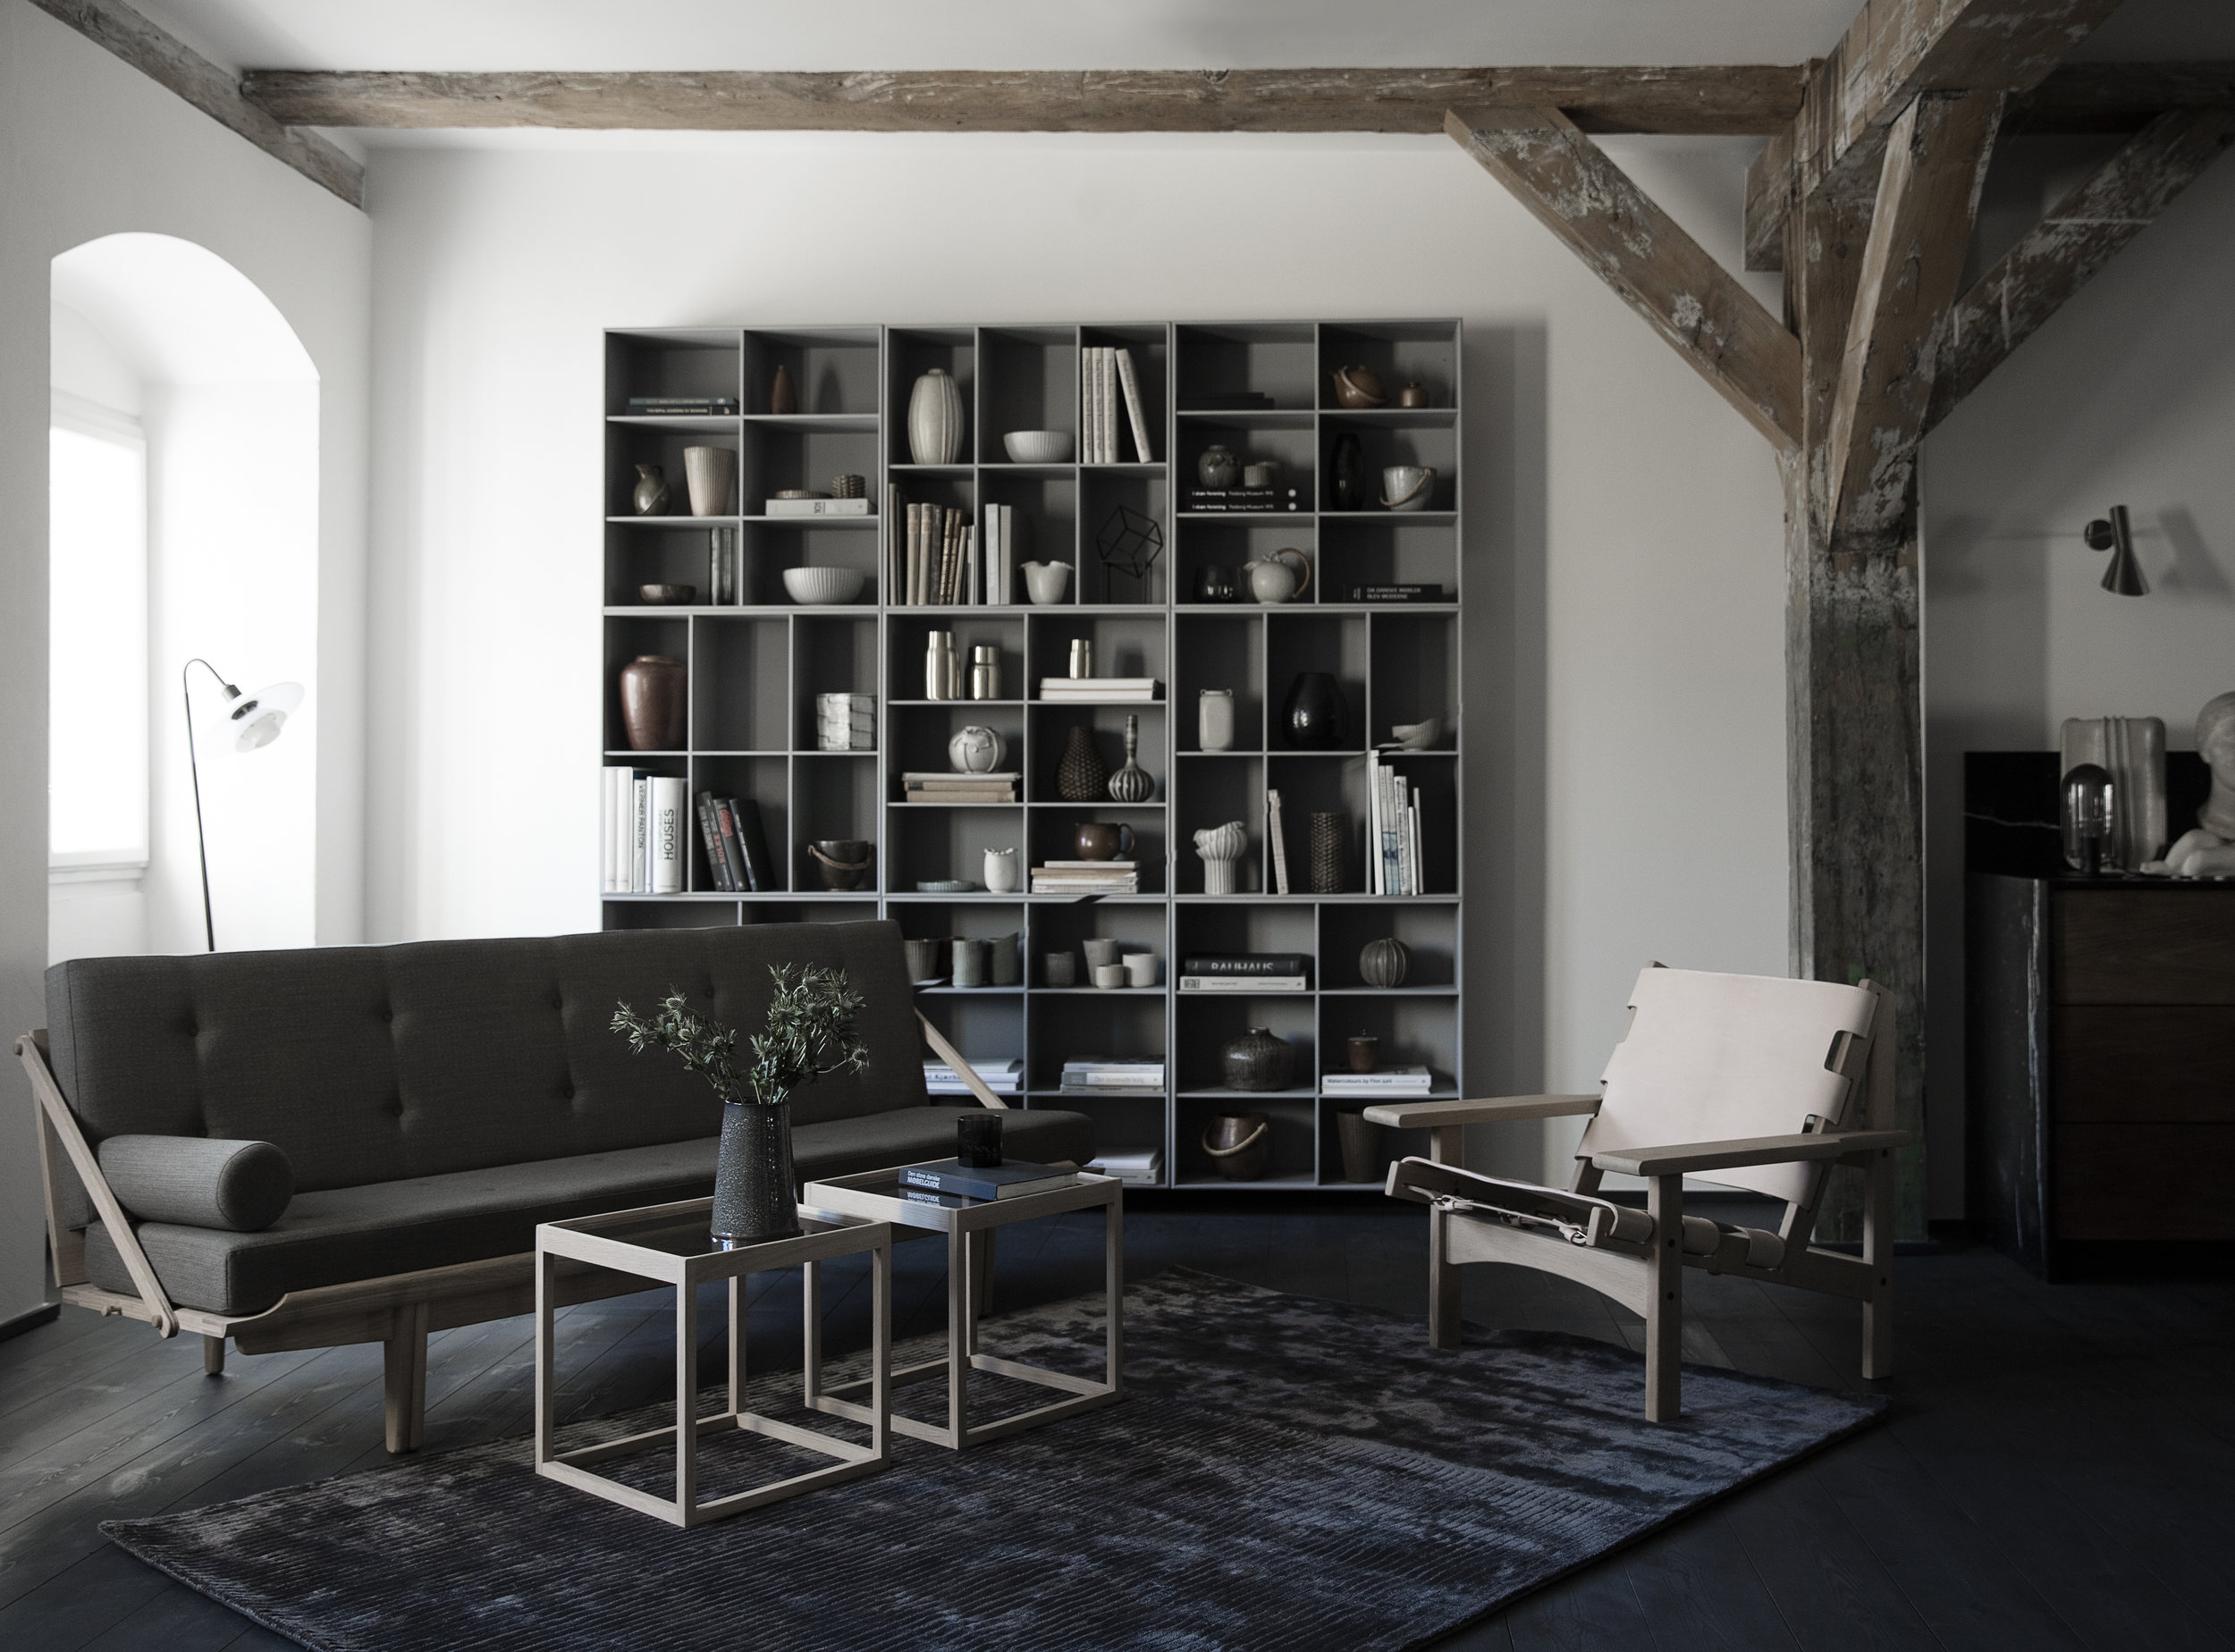 Klassik Studio The Hunting chair photographed with the PV Daybed by Poul Volther and the KØ Cube.